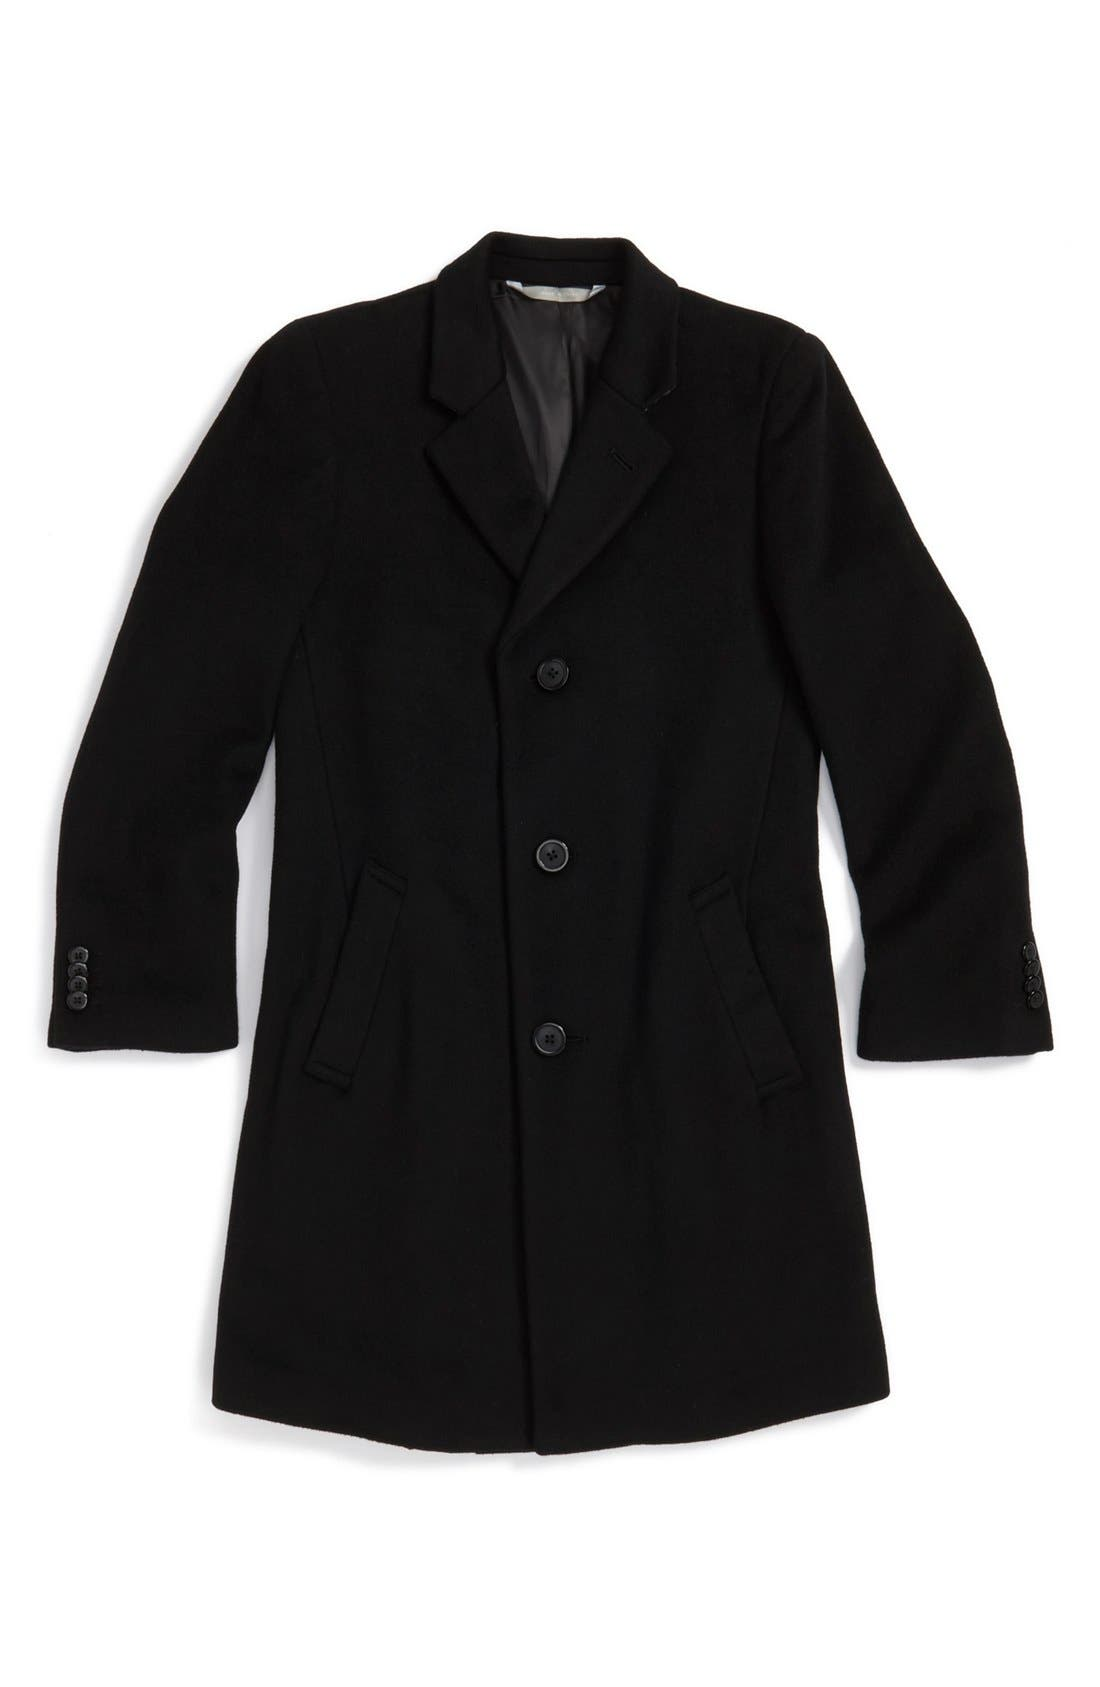 Alternate Image 1 Selected - Nordstrom Wool Blend Topcoat (Big Boys)